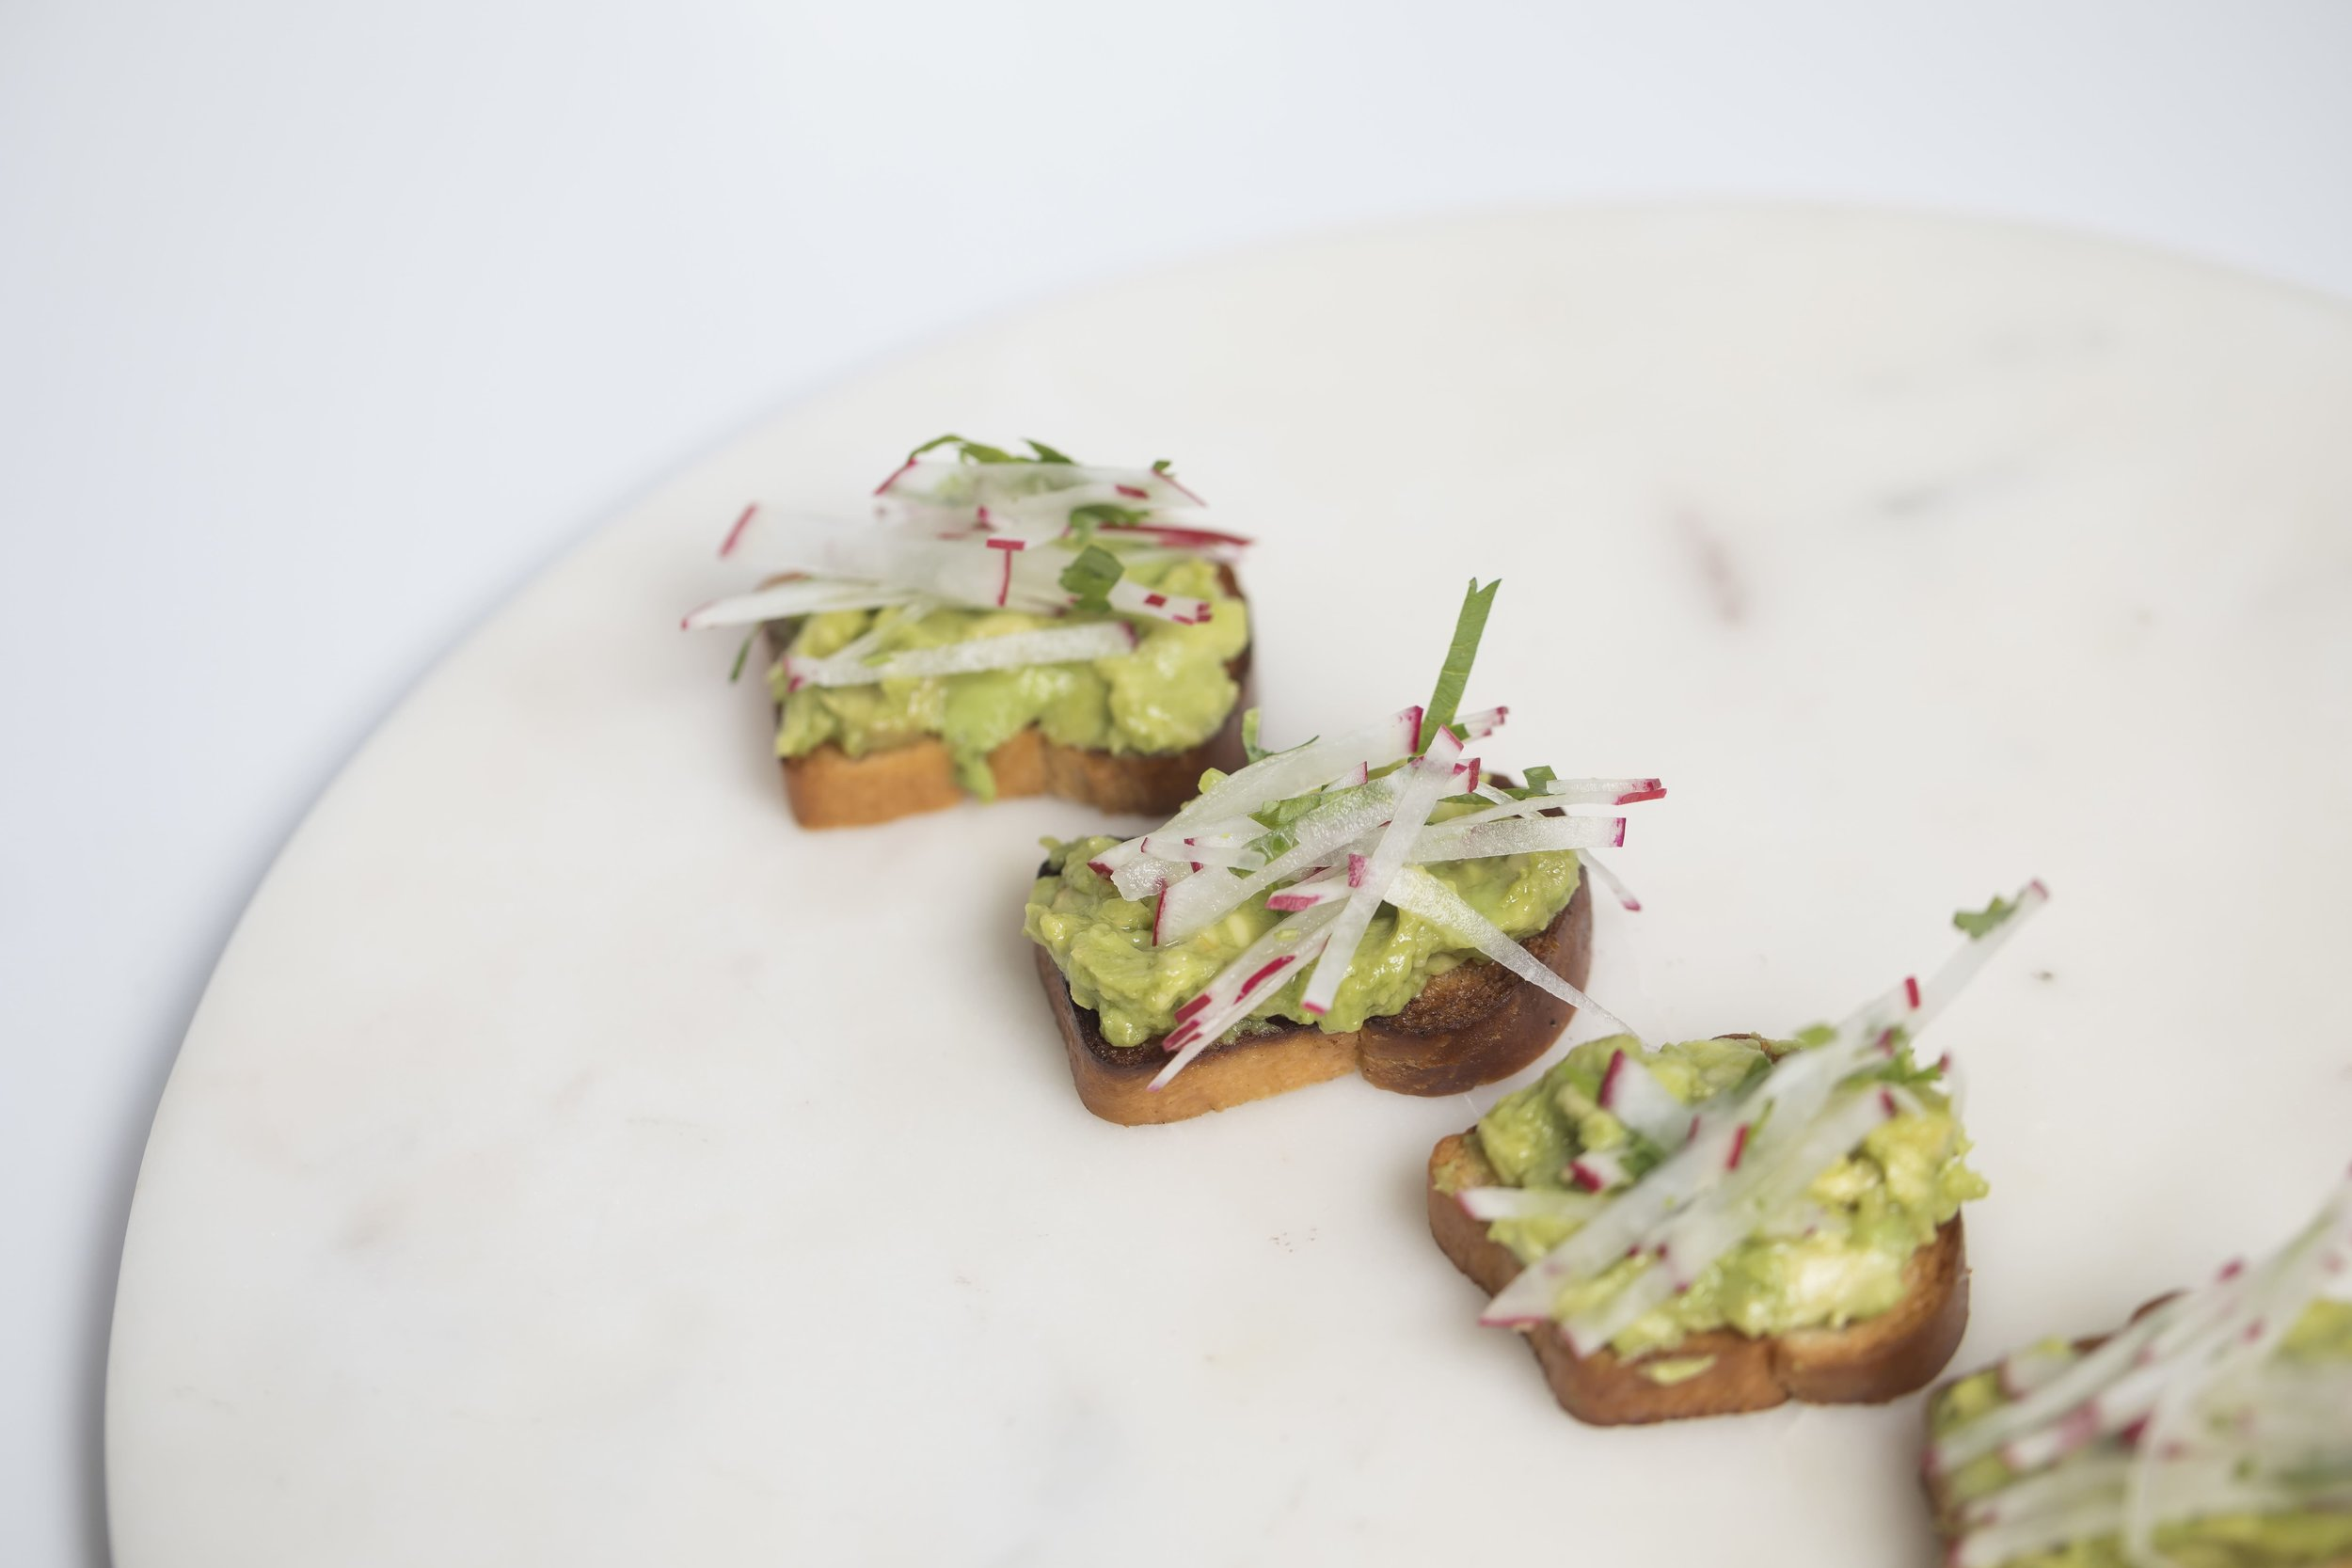 Avocado Toast_HDV_Fall 18 GP Tasting_BH_34 2 (3).jpg